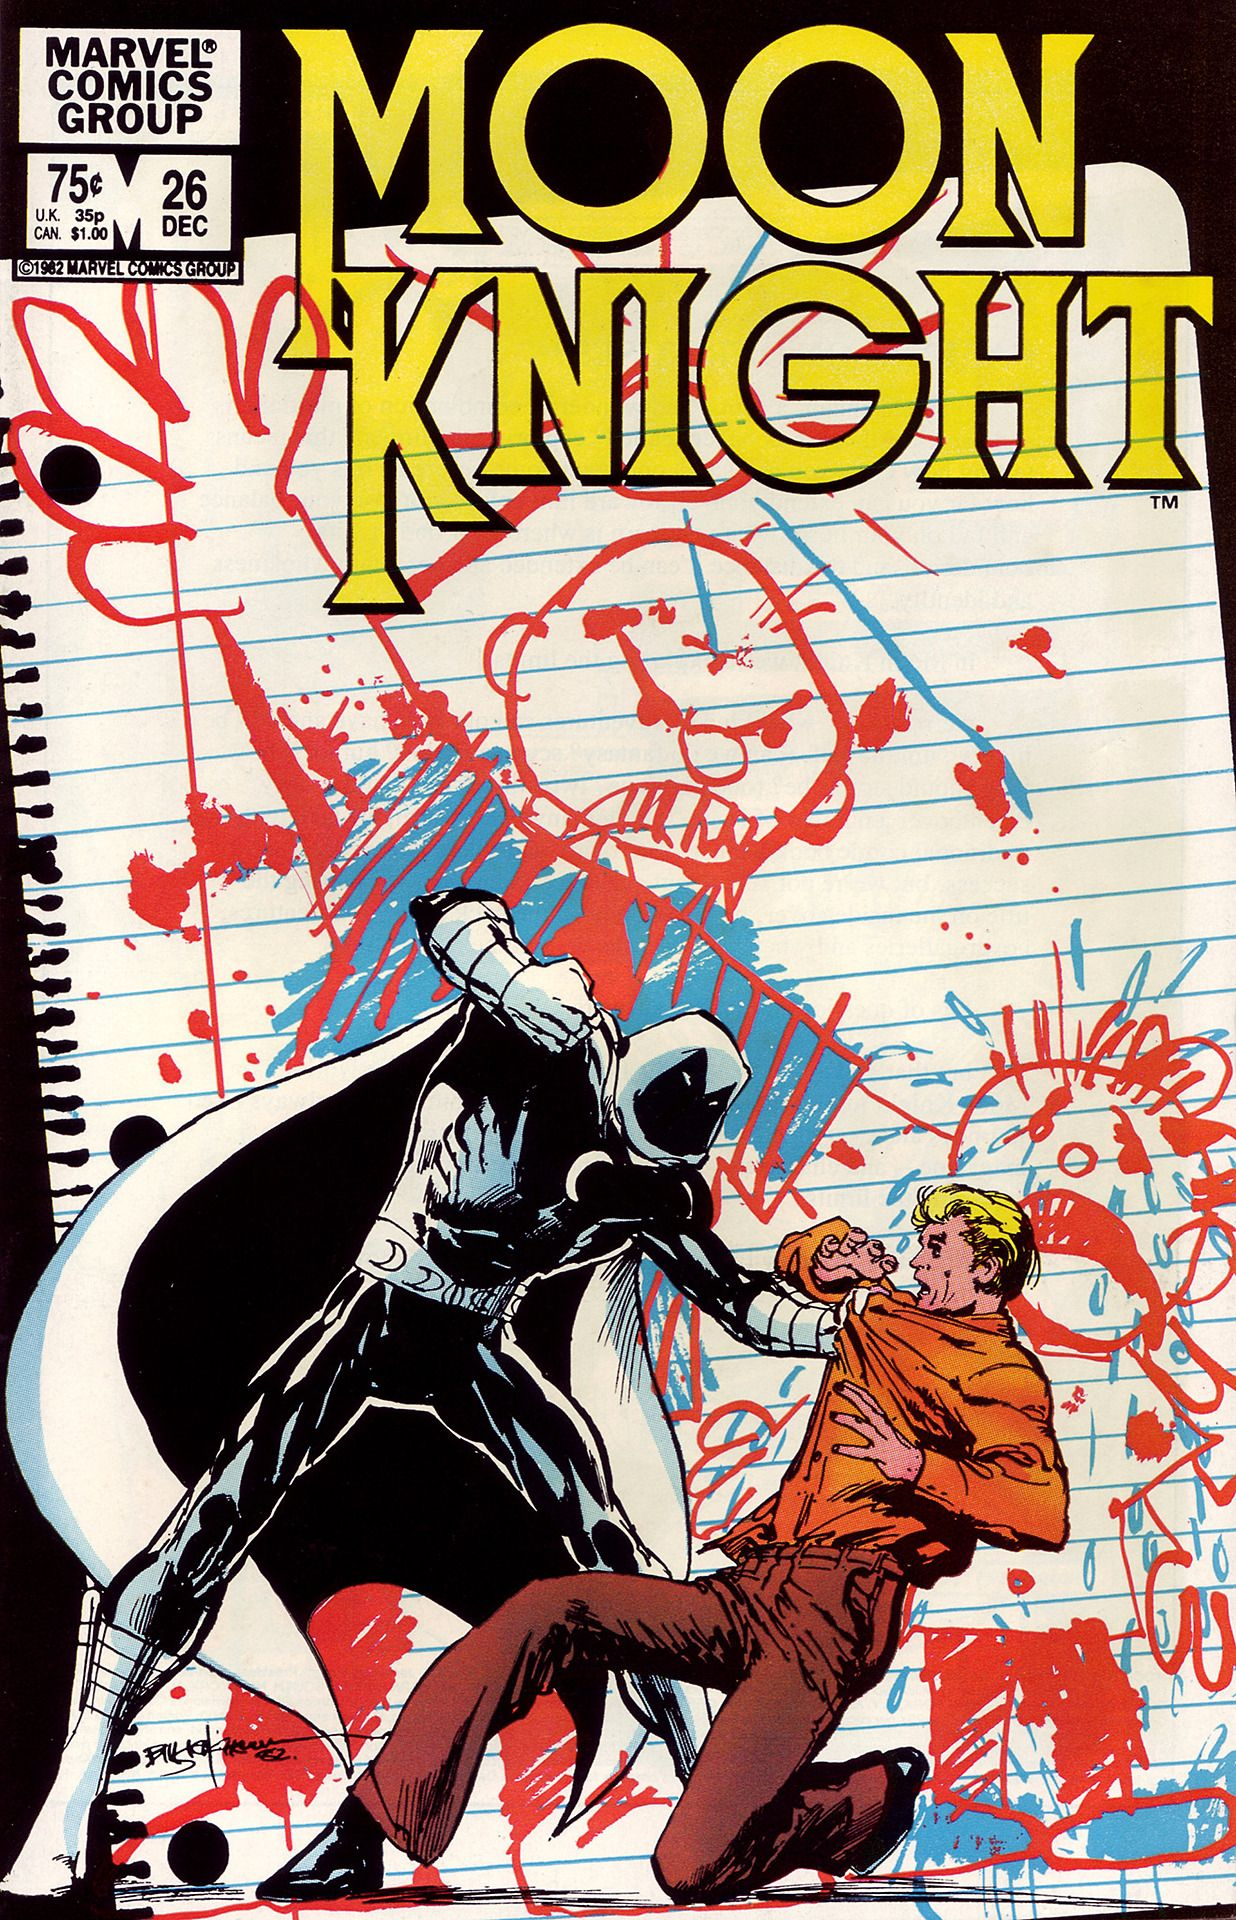 Moon Knight 26 Cover By Bill Sienkiewicz Moon Knight Comics Moon Knight Marvel Moon Knight